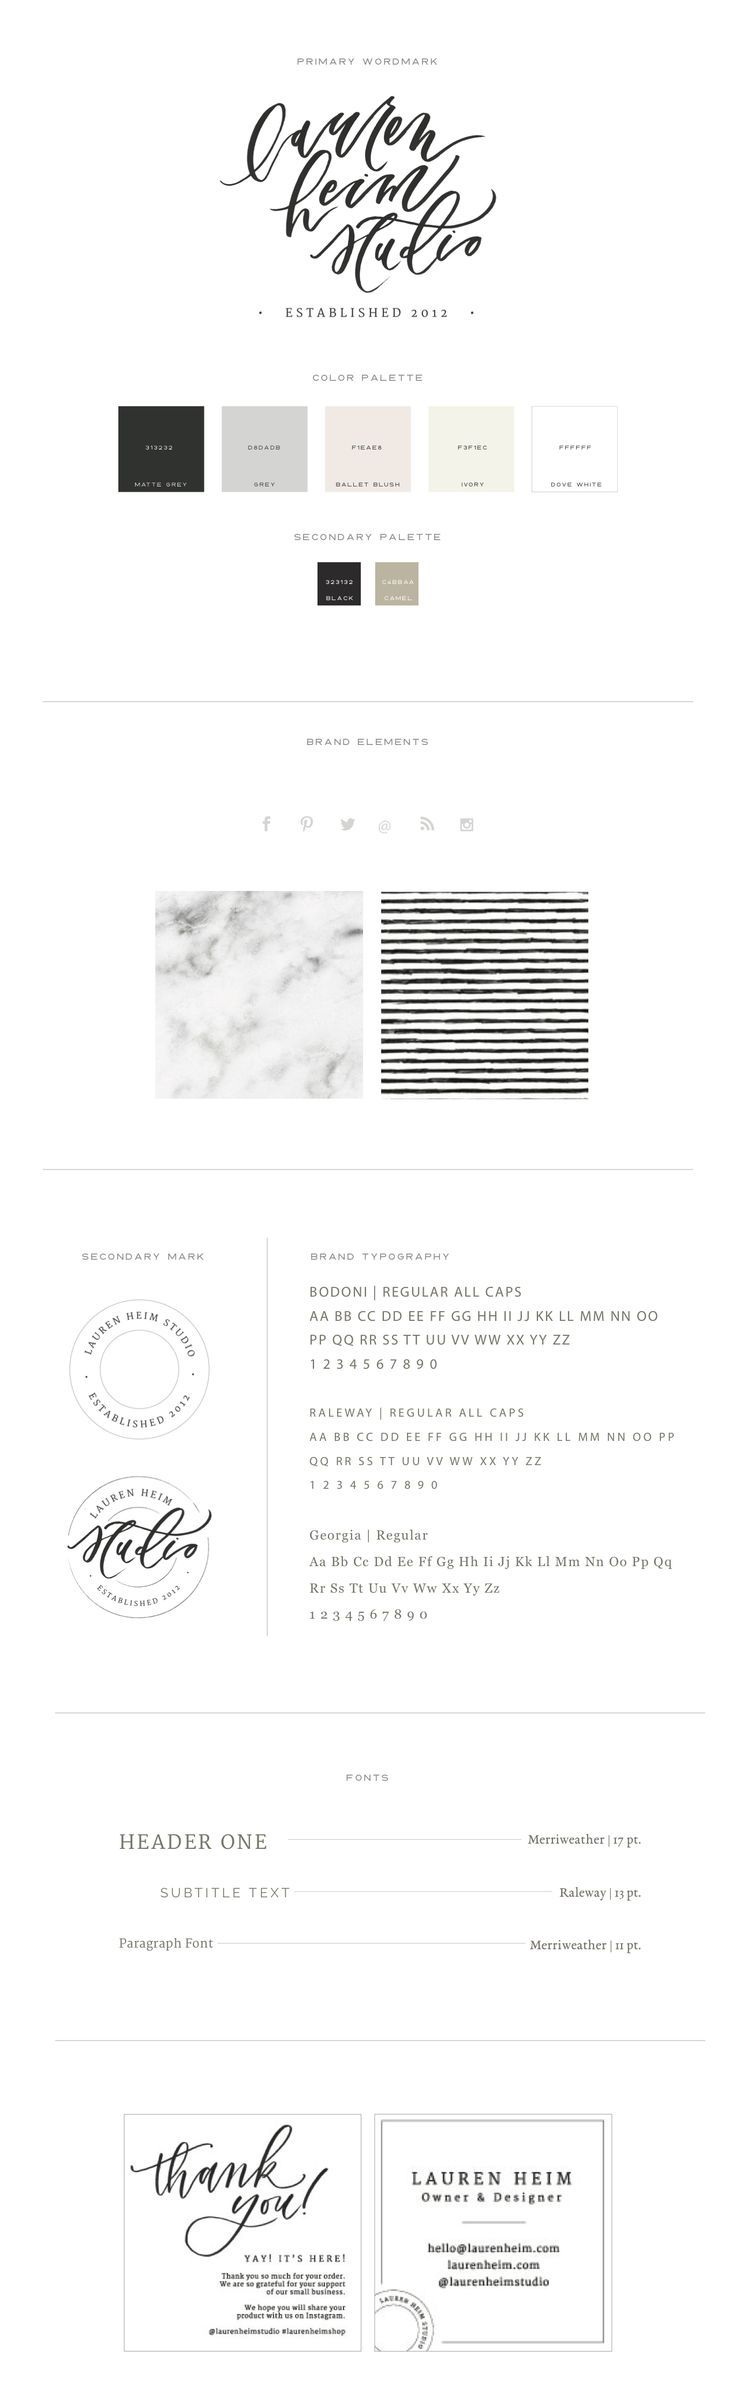 Branding for Lauren Heim | Branding and Web Design for Women in Business by With Grace and Gold